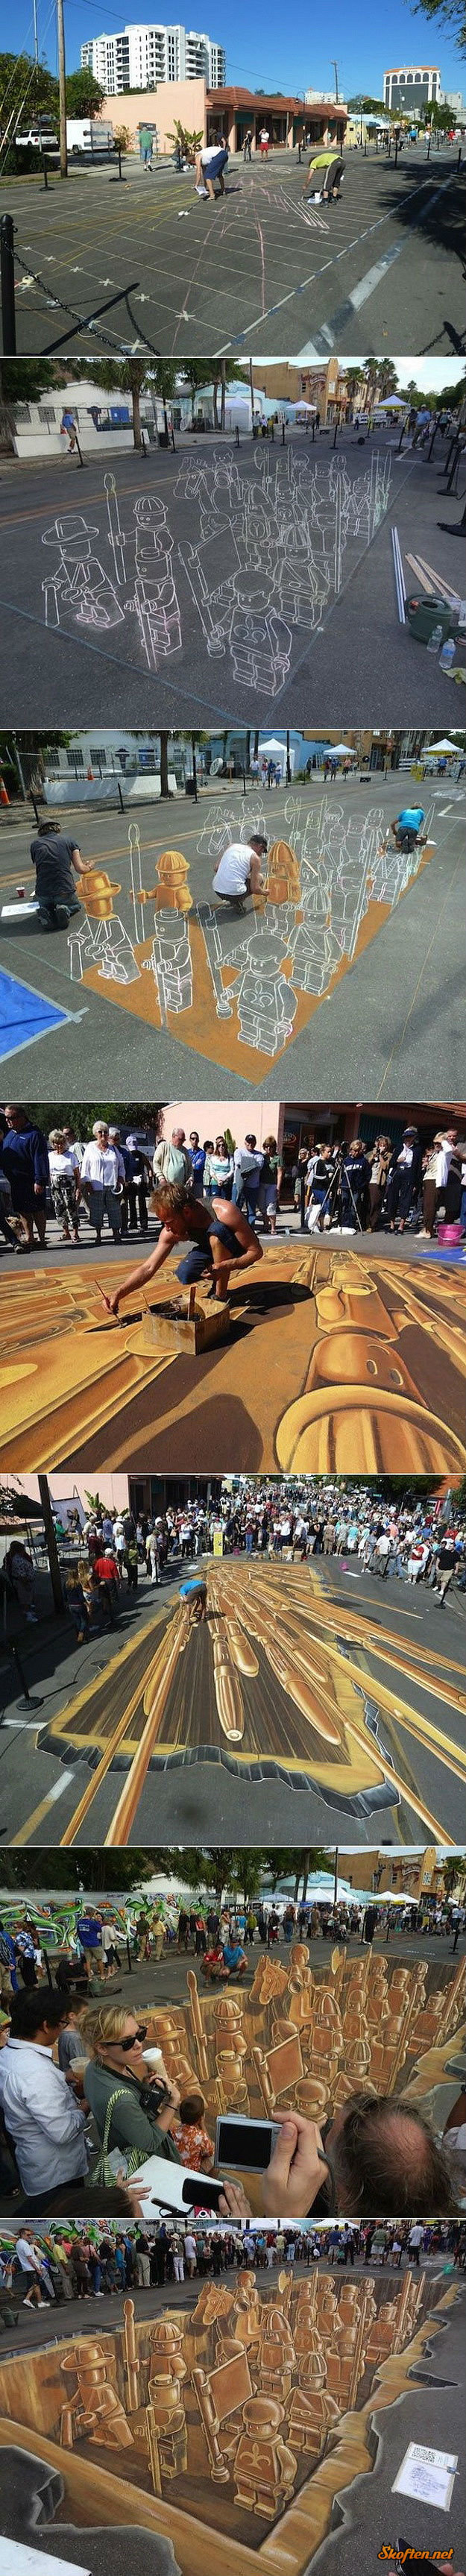 lego sidewalk drawing.